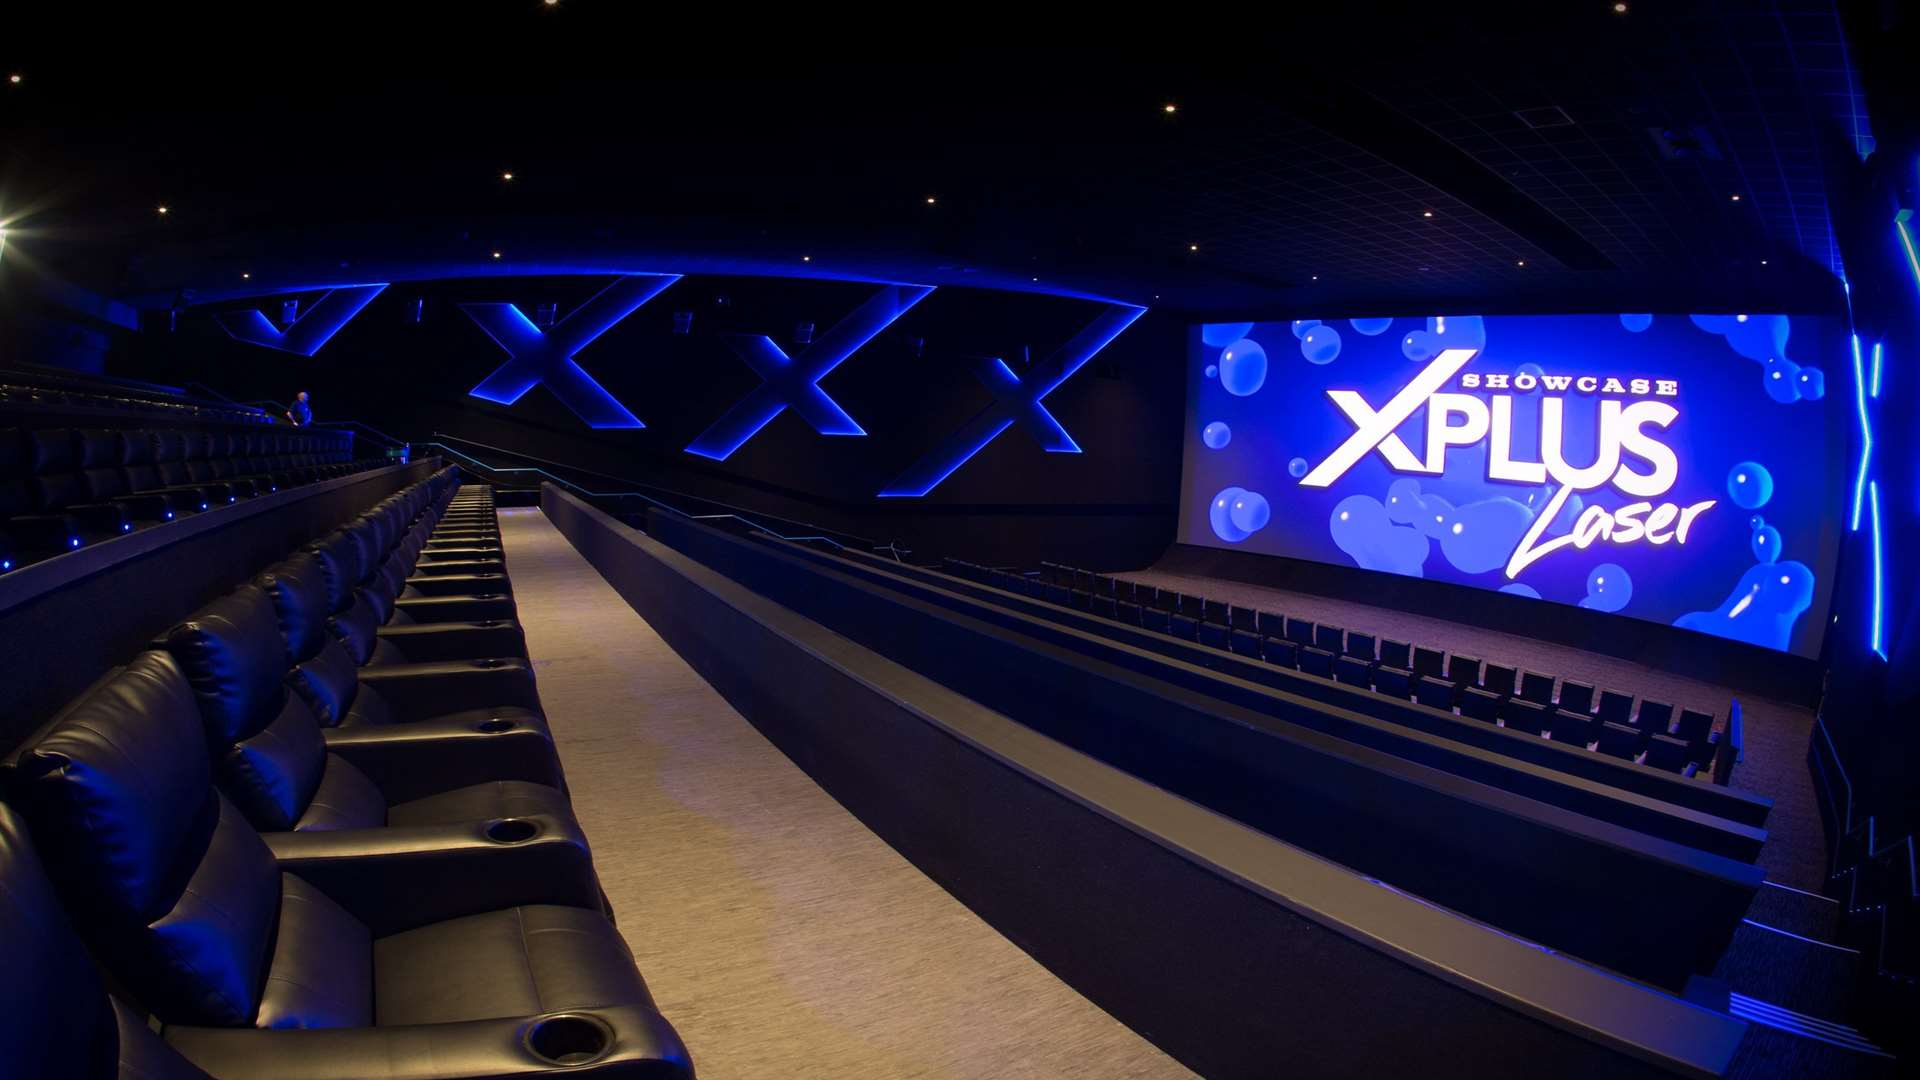 Bluewater Cinema de Lux opens four new luxury screens with